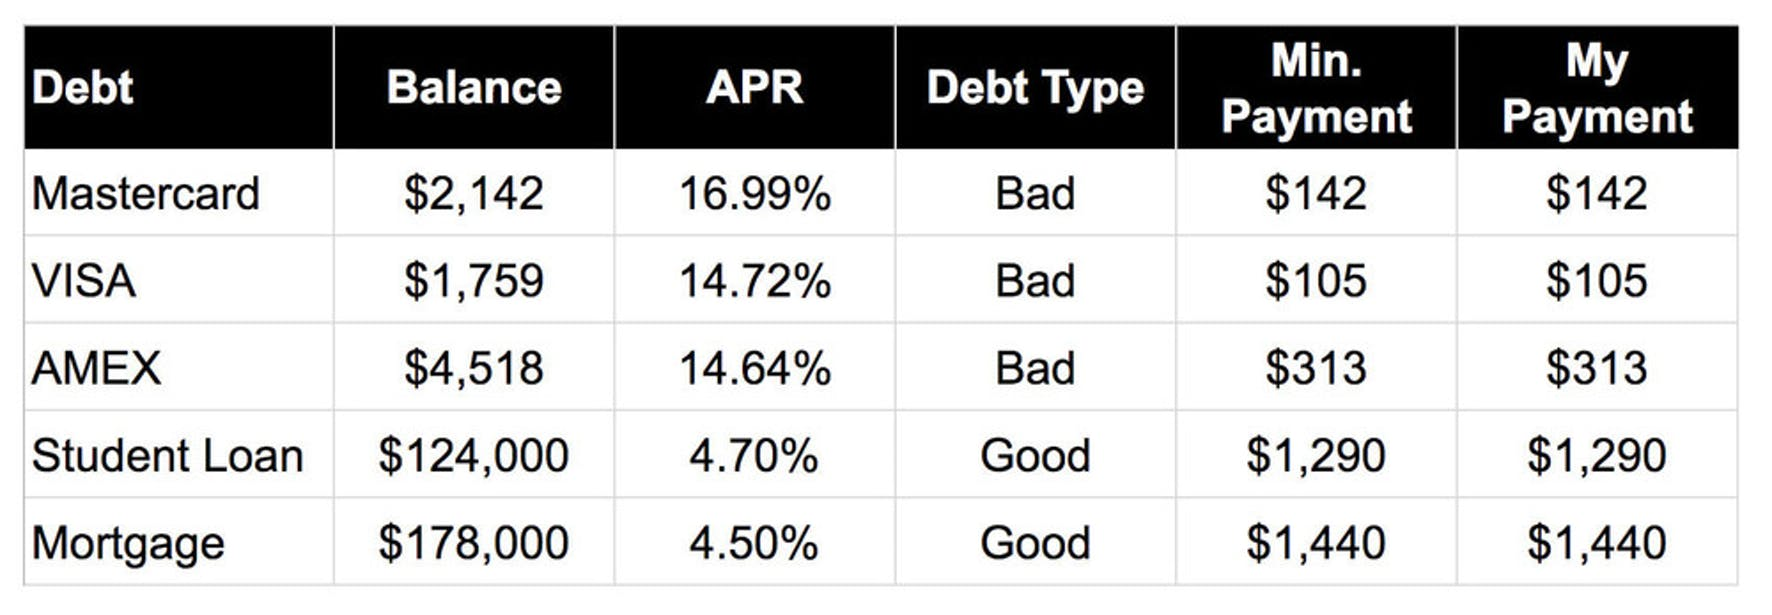 WealthFit 6-Step Debt Strategy Spreadsheet